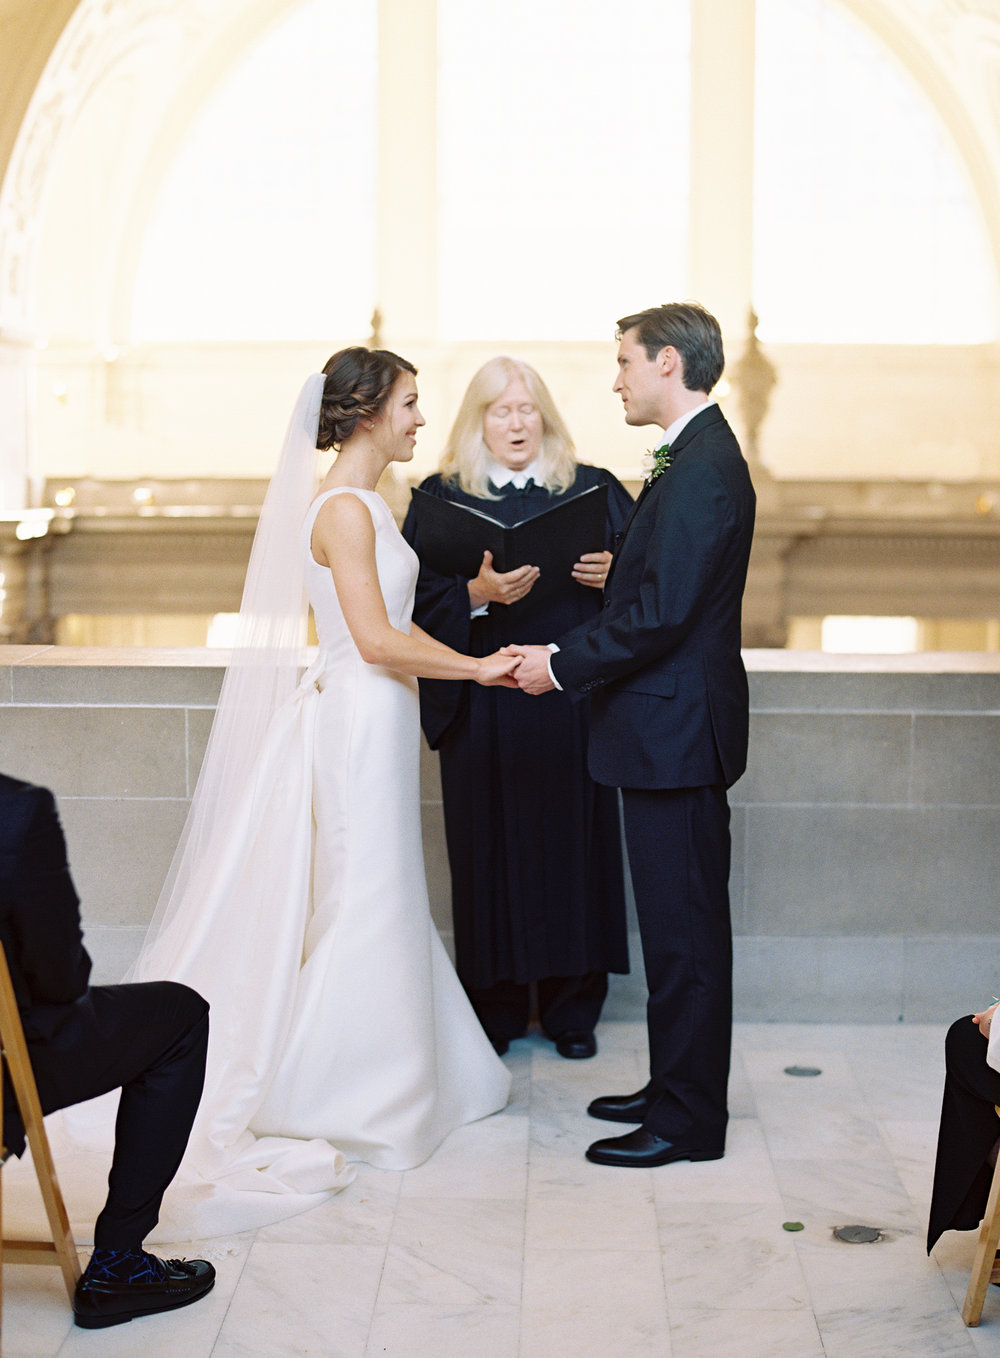 Meghan Mehan Photography - California Wedding Photographer | San Francisco City Hall Wedding 095.jpg